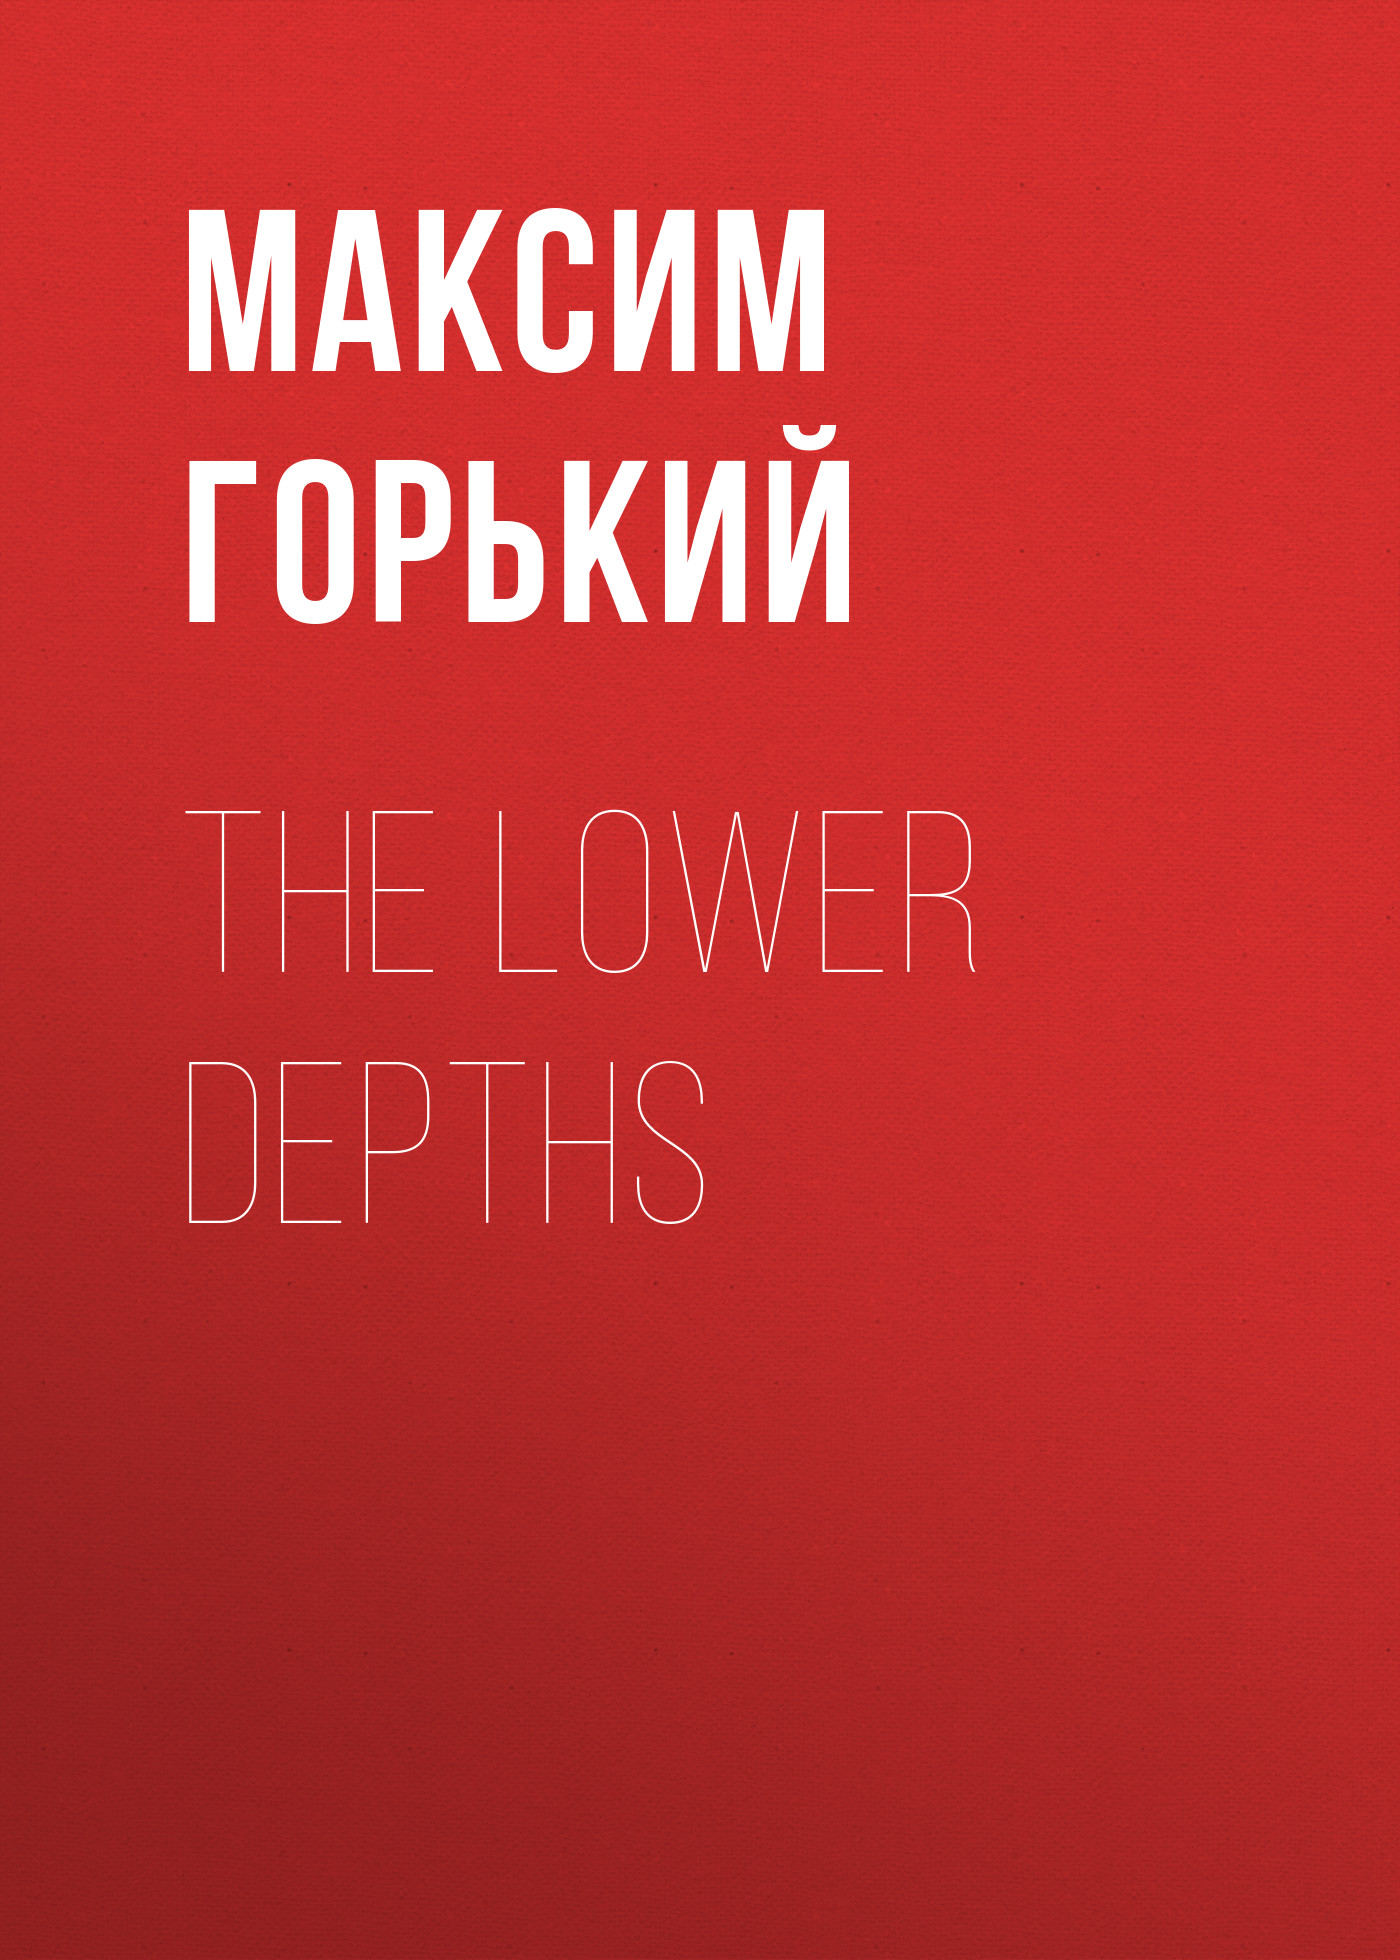 Максим Горький The Lower Depths цена